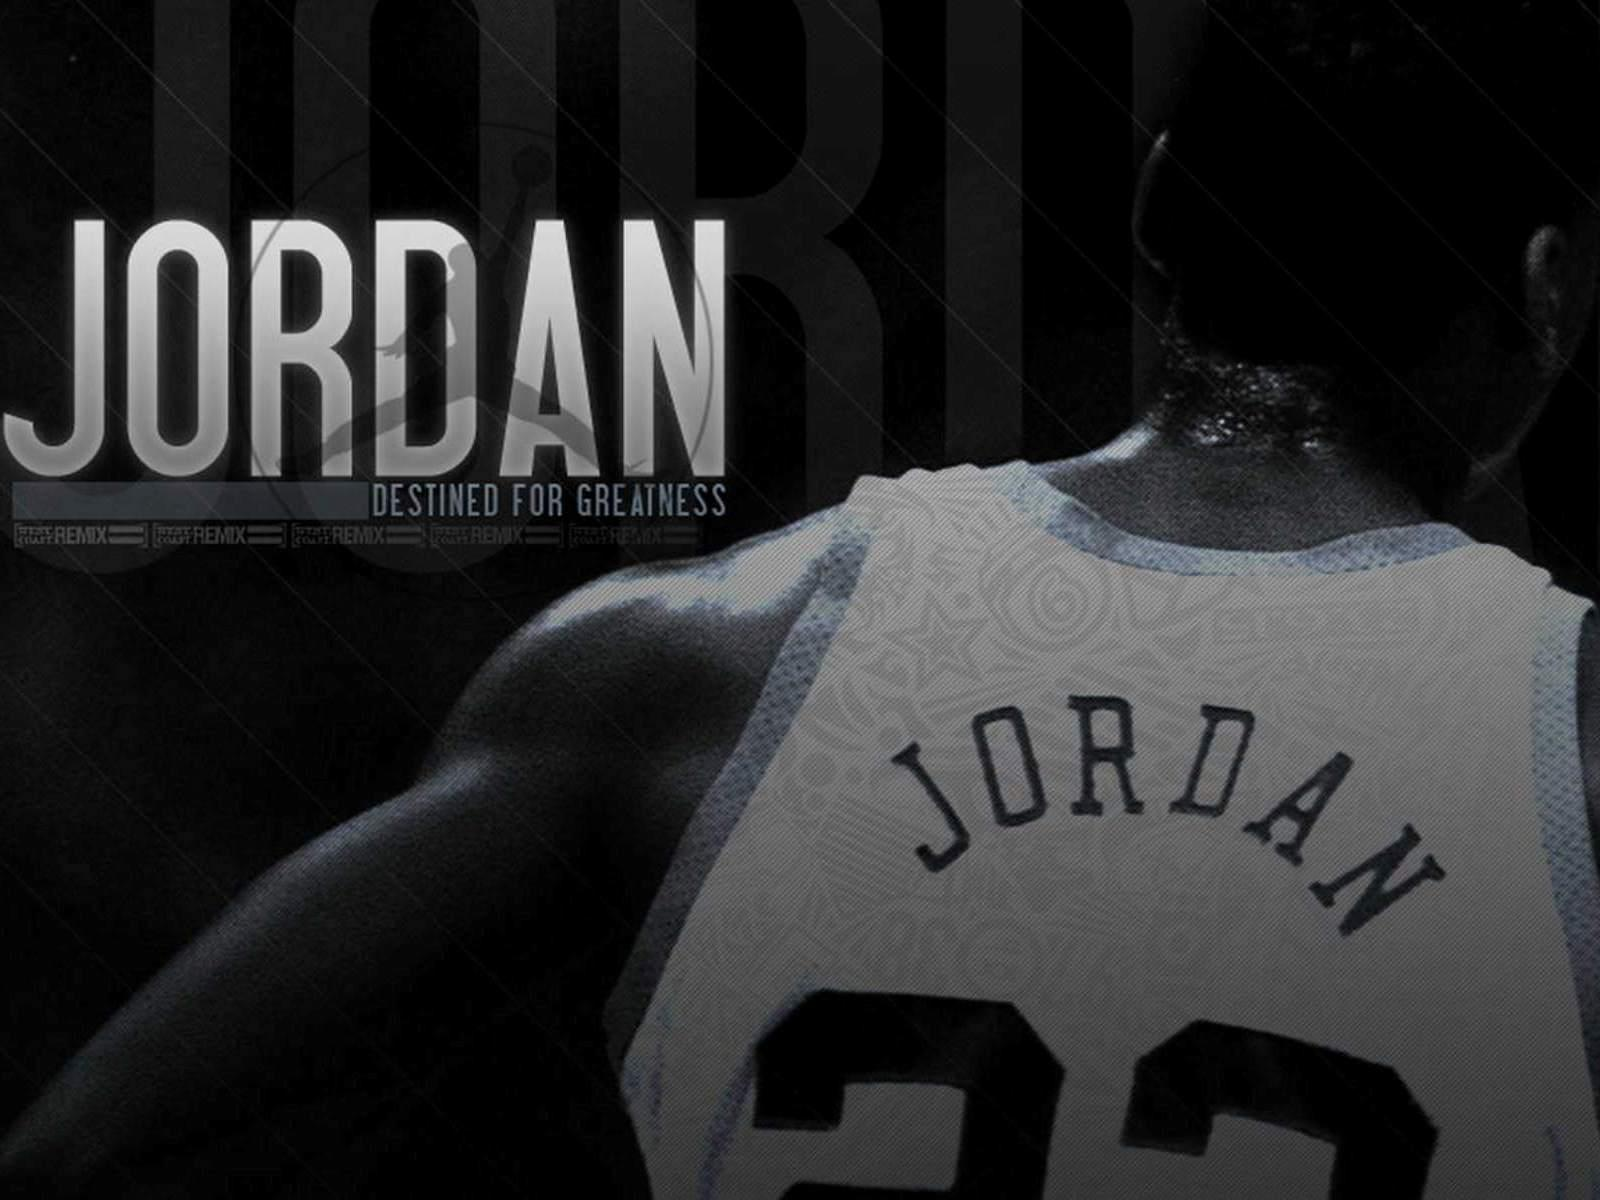 vrvmuj Michael Jordan Logo Wallpapers - Wallpaper Cave